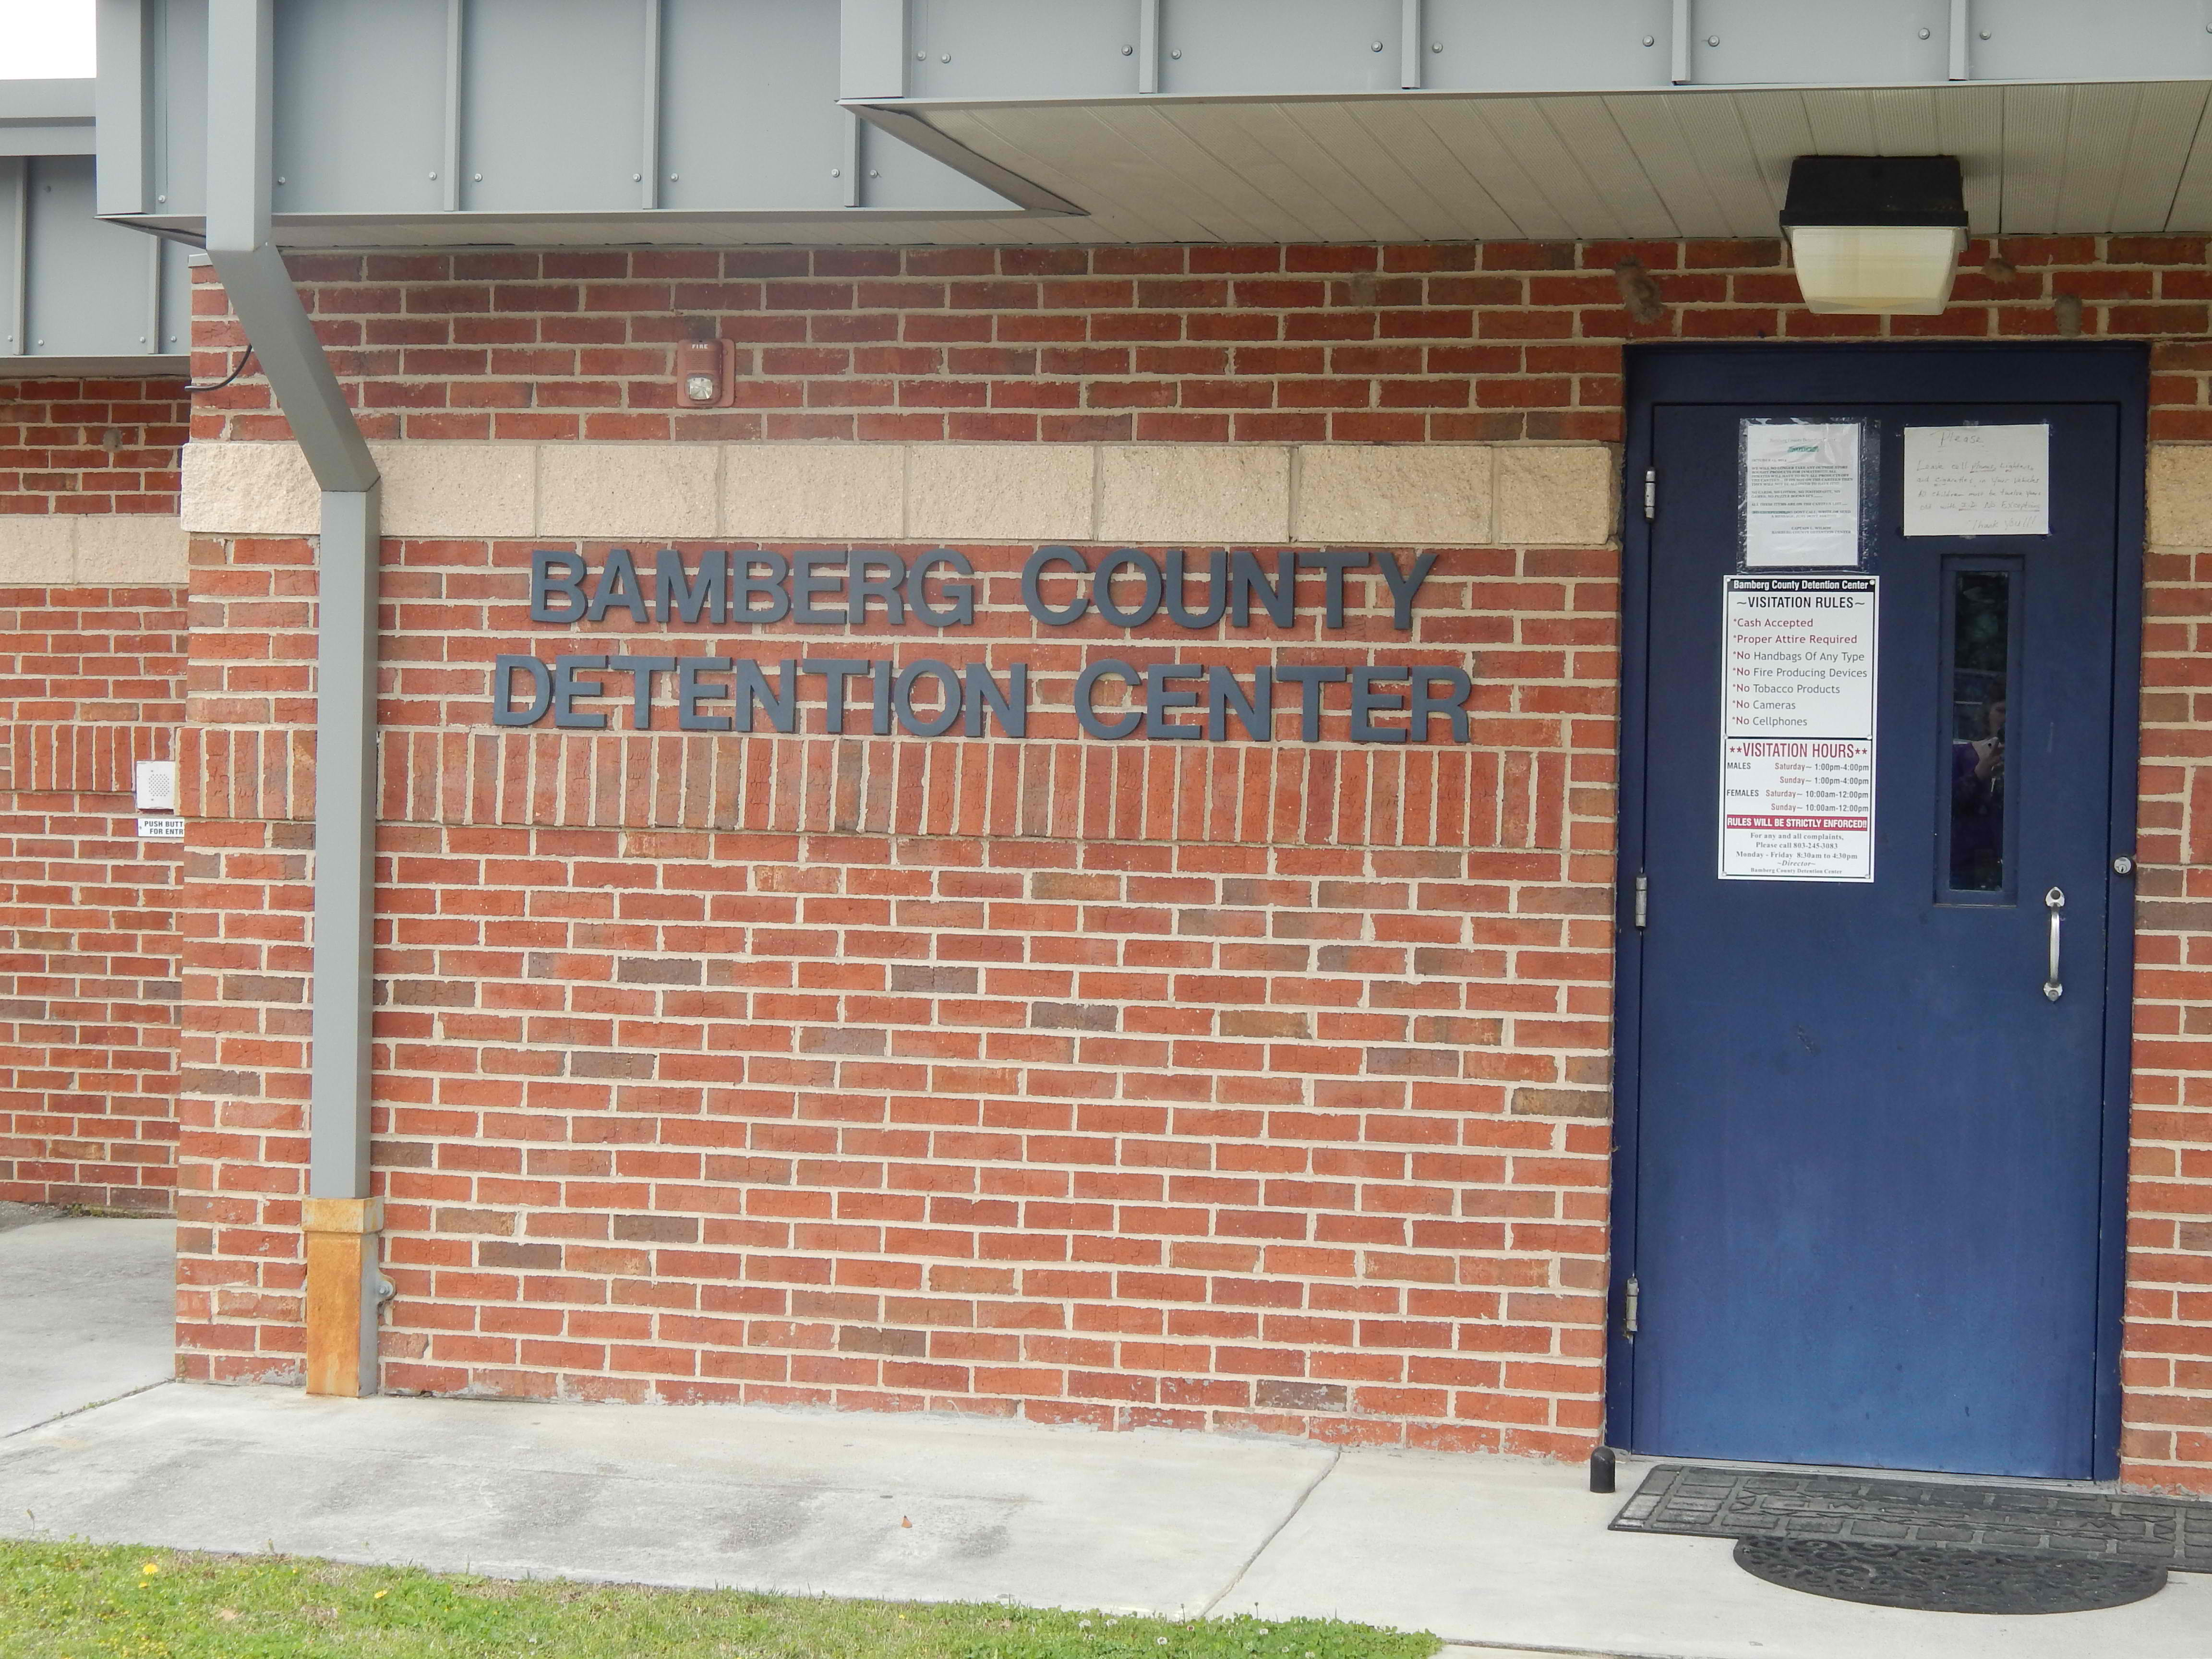 Bamberg County SC Detention Center